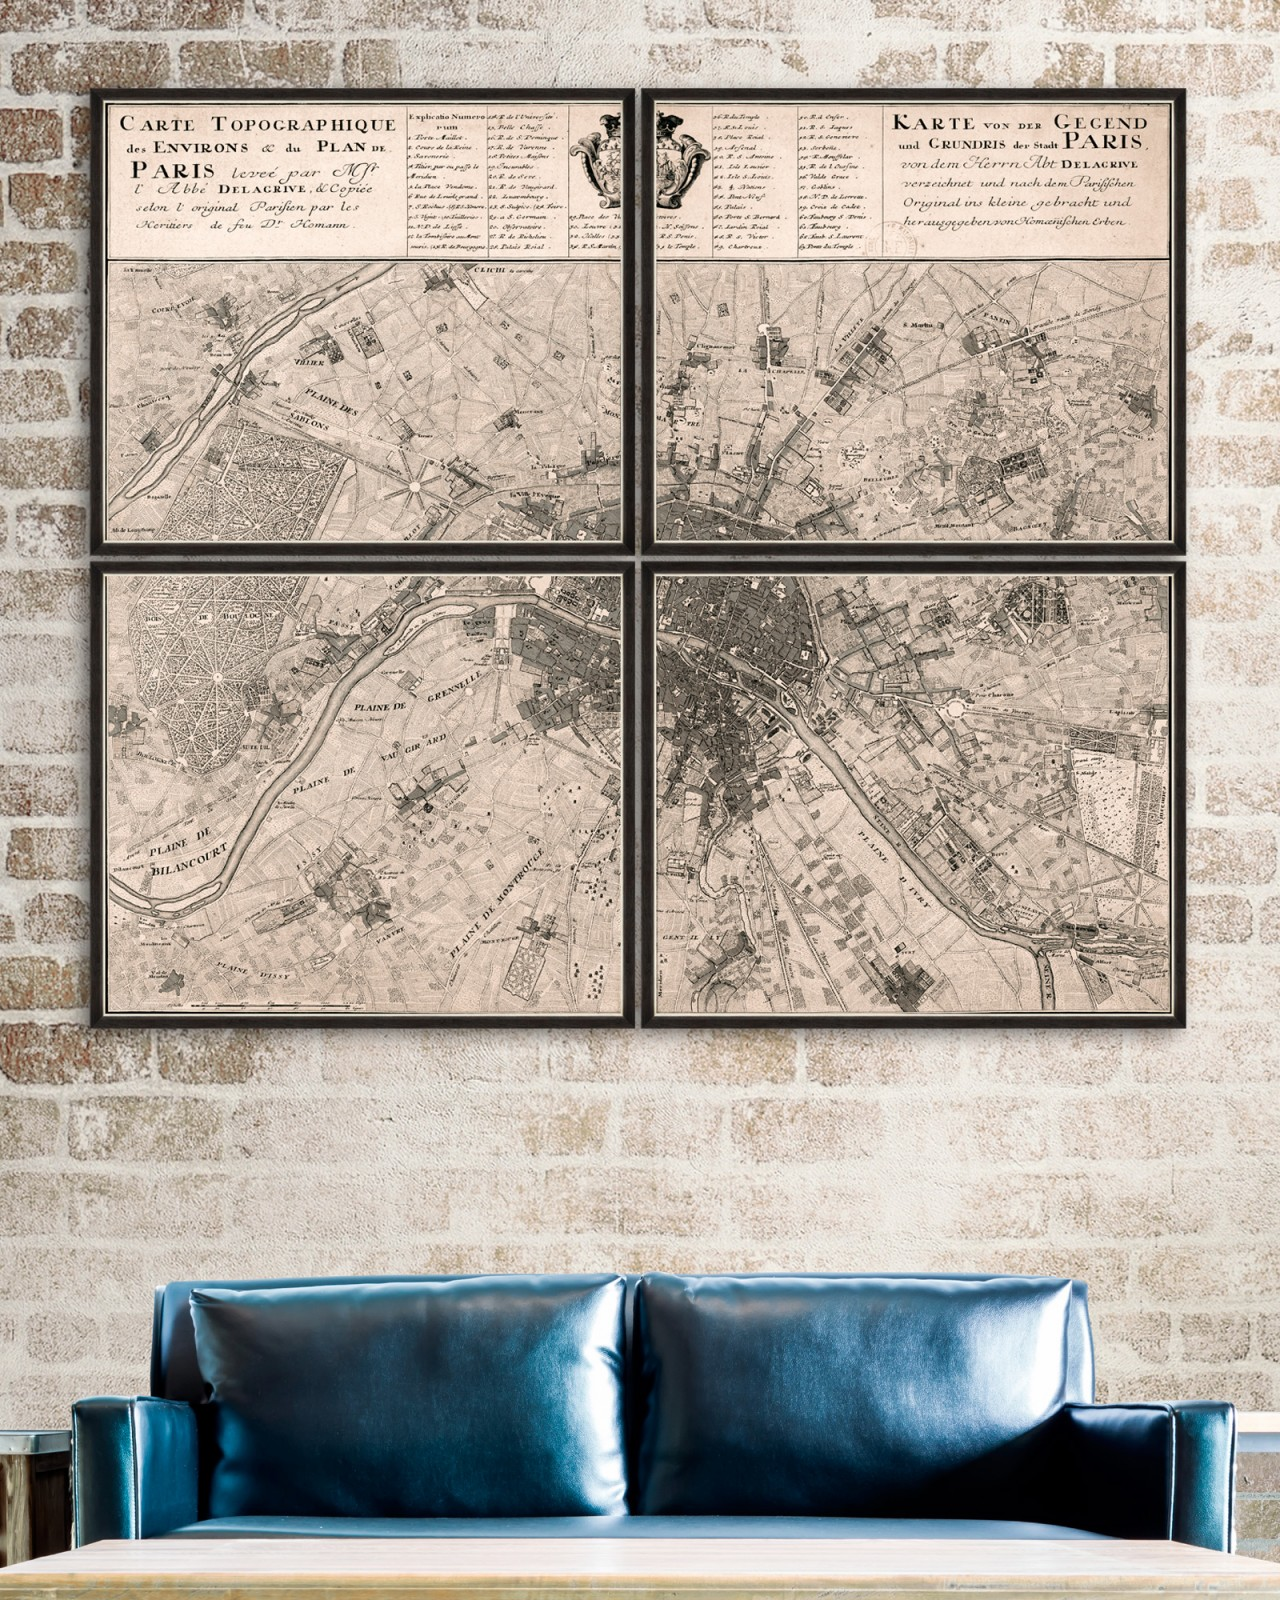 CARTE TOPOGRAPHIQUE DE PARIS 1735 Set of 4 Framed art